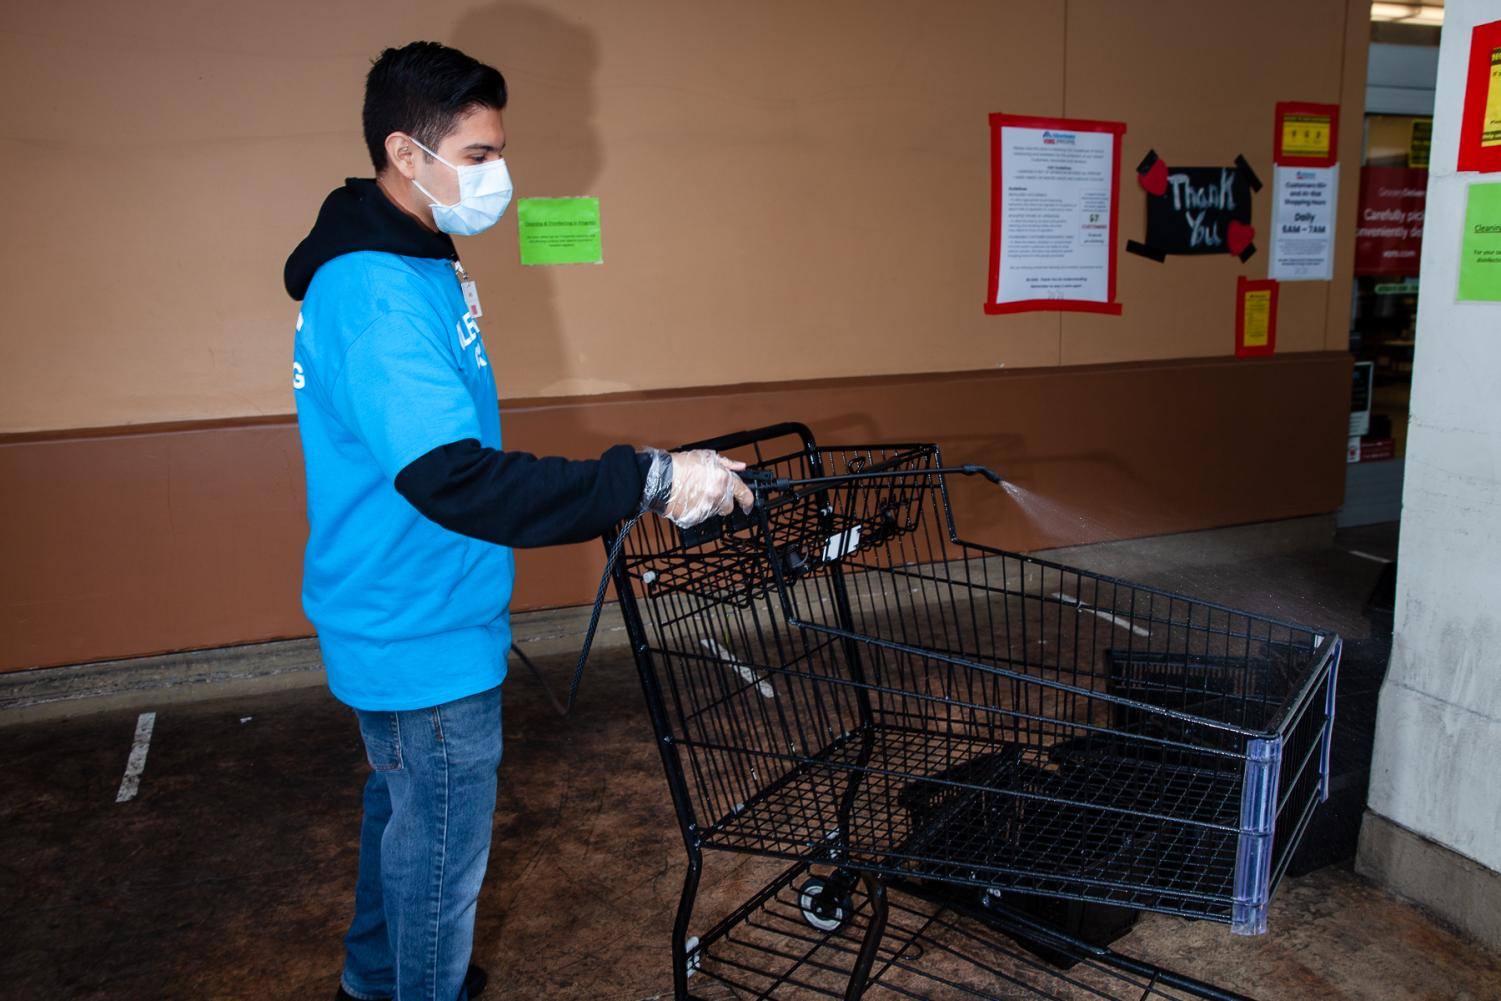 Dario Alonso sprays a disinfectant solution on shopping carts at Vons Supermarket on The Mesa on Thursday April 9, in Santa Barbara, Calif. Alonso started working two weeks ago to help his mother pay rent after she lost her job due to coronavirus precautions.